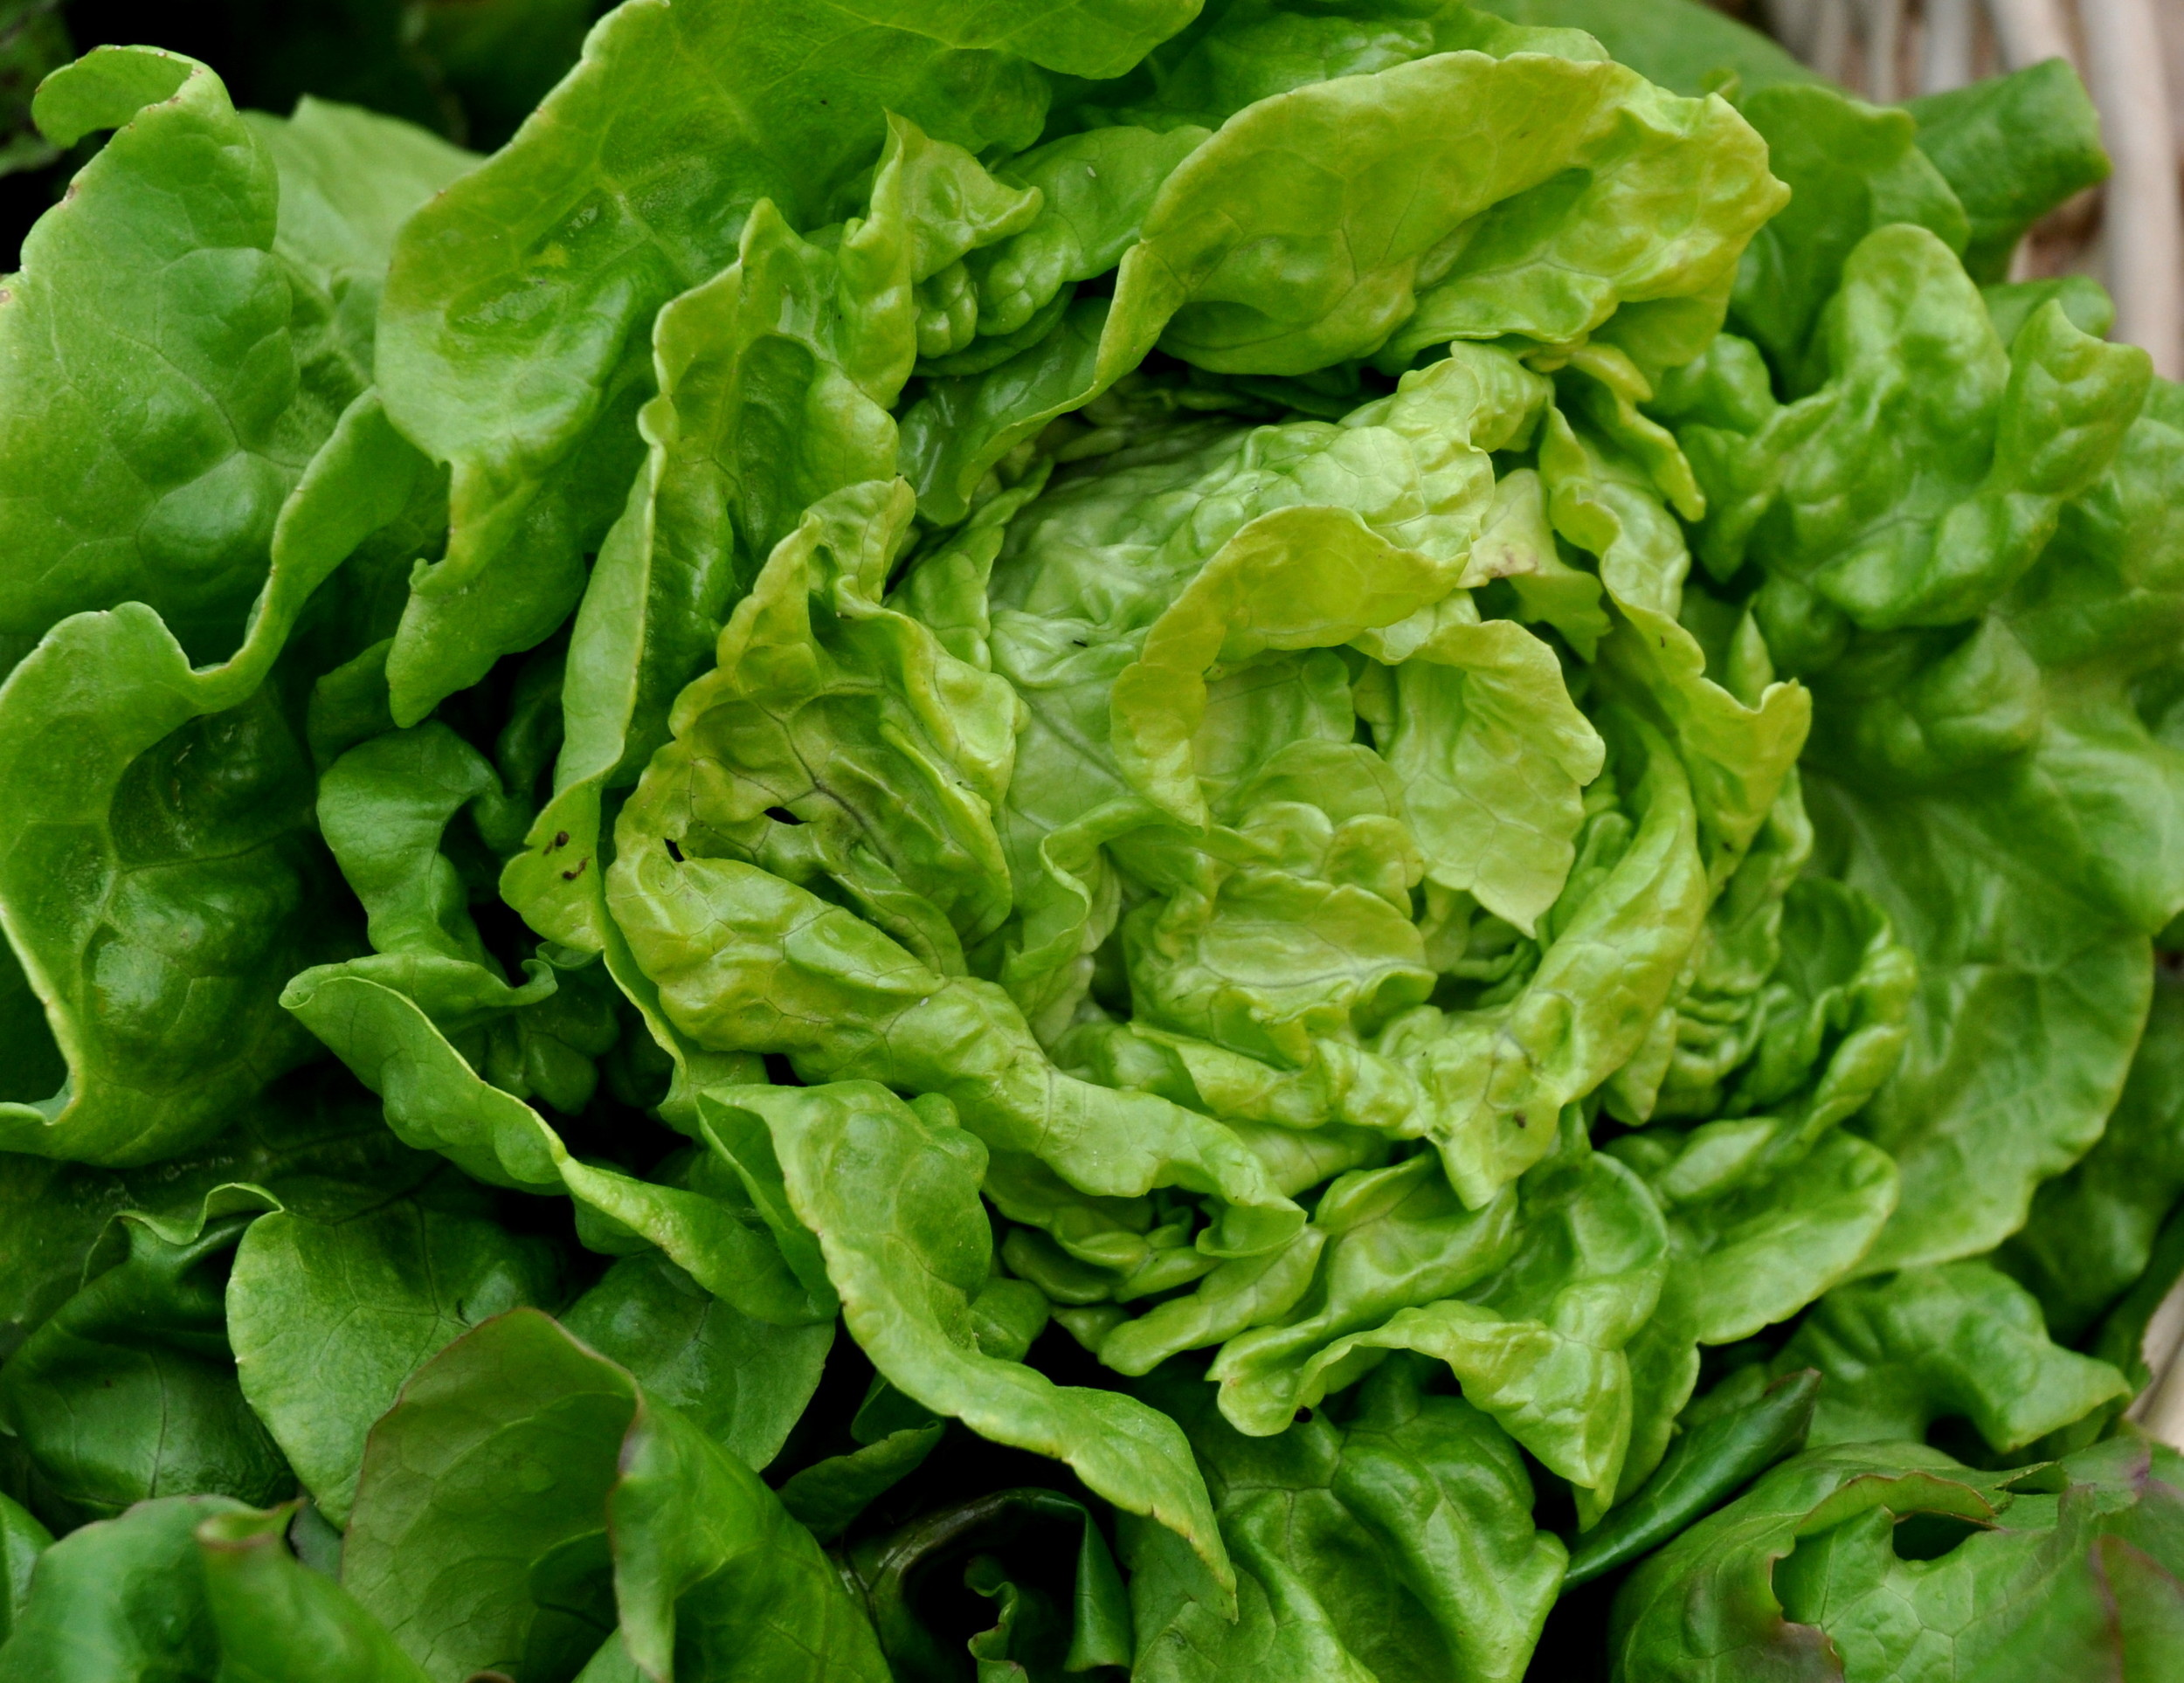 Tom Thumb lettuce from One Leaf Farm. Photo copyright 2012 by Zachary D. Lyons.